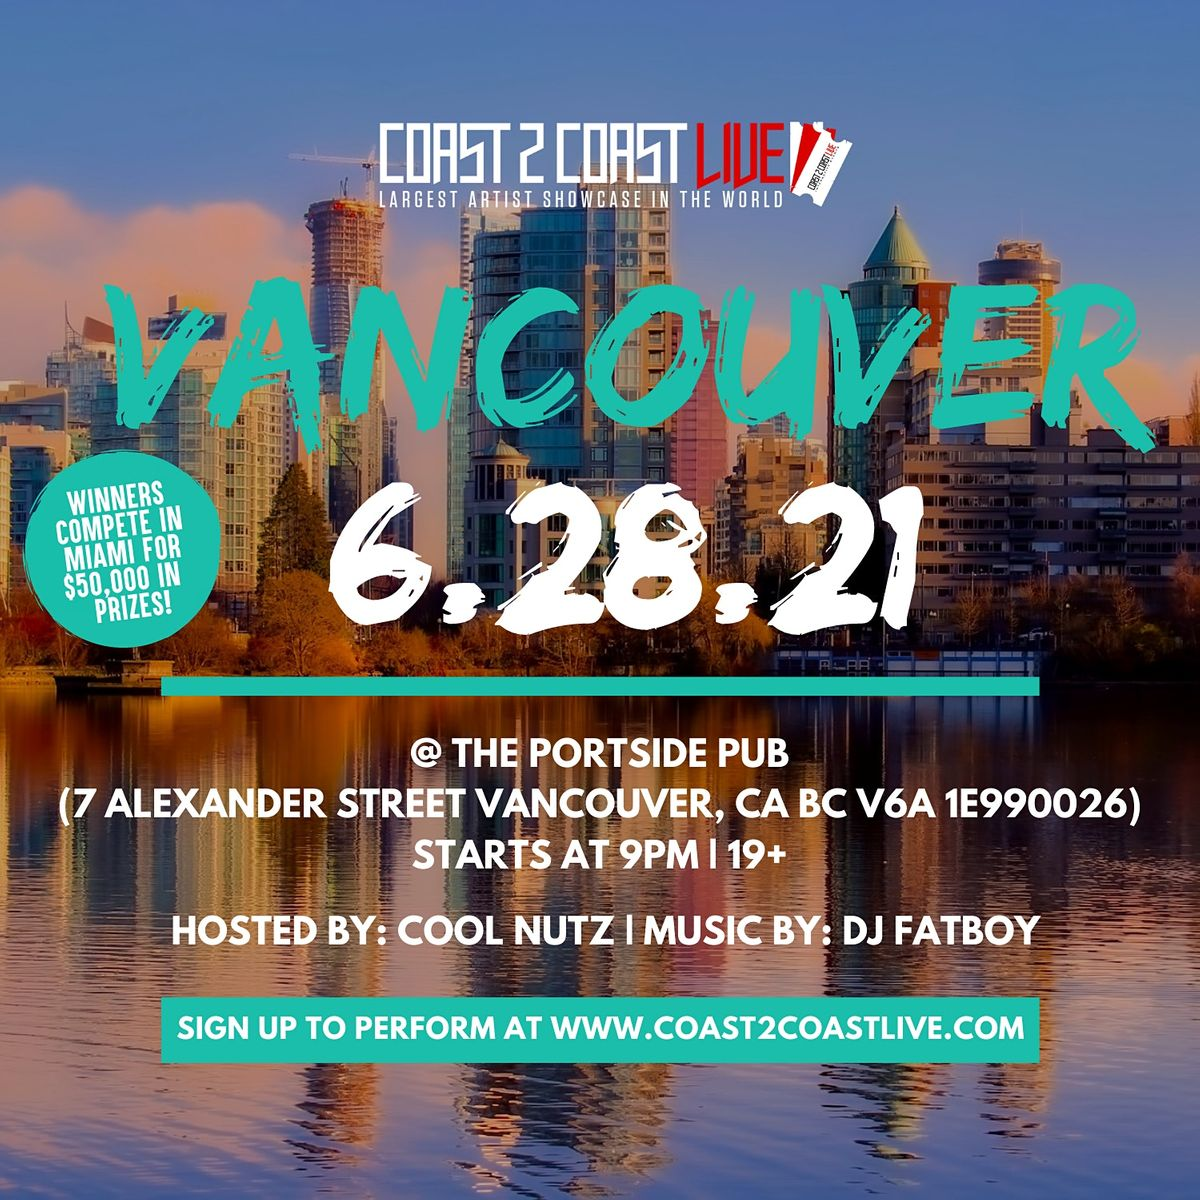 Coast 2 Coast LIVE Showcase Vancouver - Artists Win $50K In Prizes, 1 March | Event in VANCOUVER | AllEvents.in